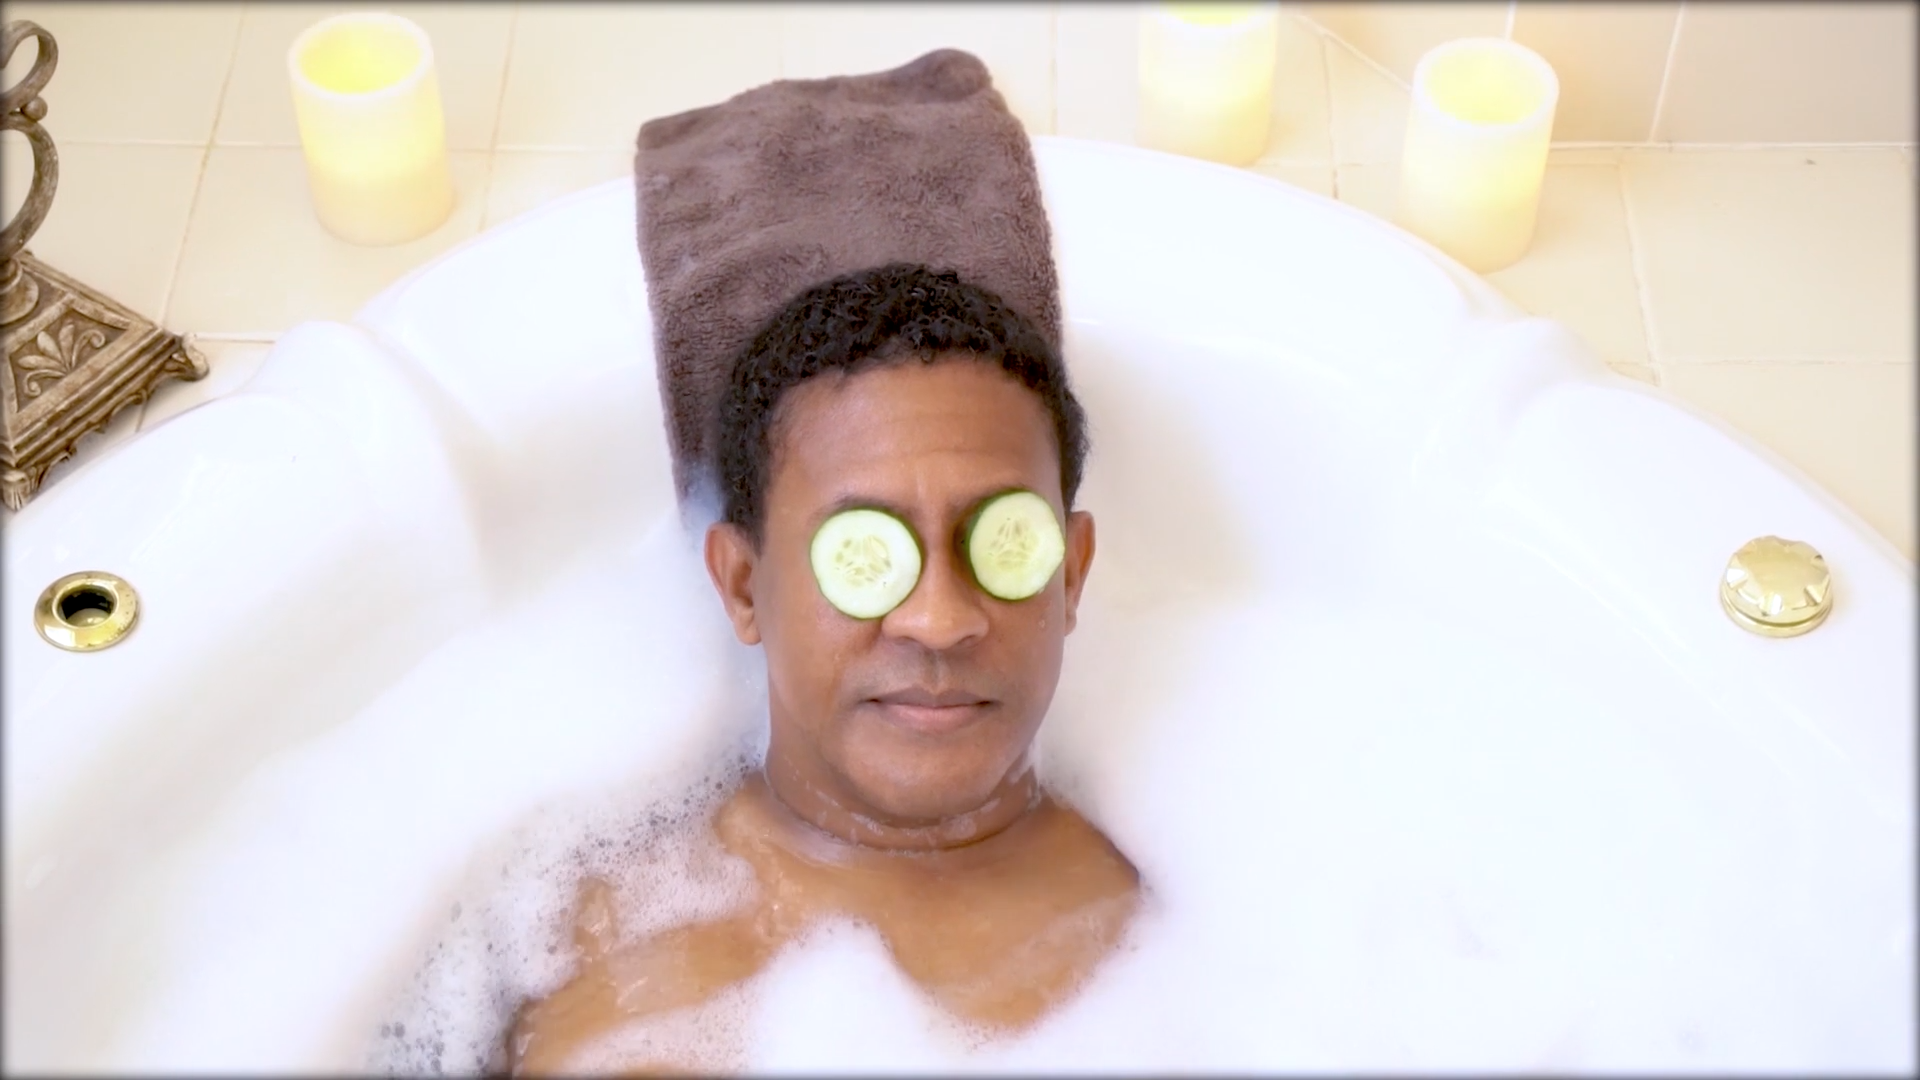 Man taking bubble bath with cucumbers on his eyes.